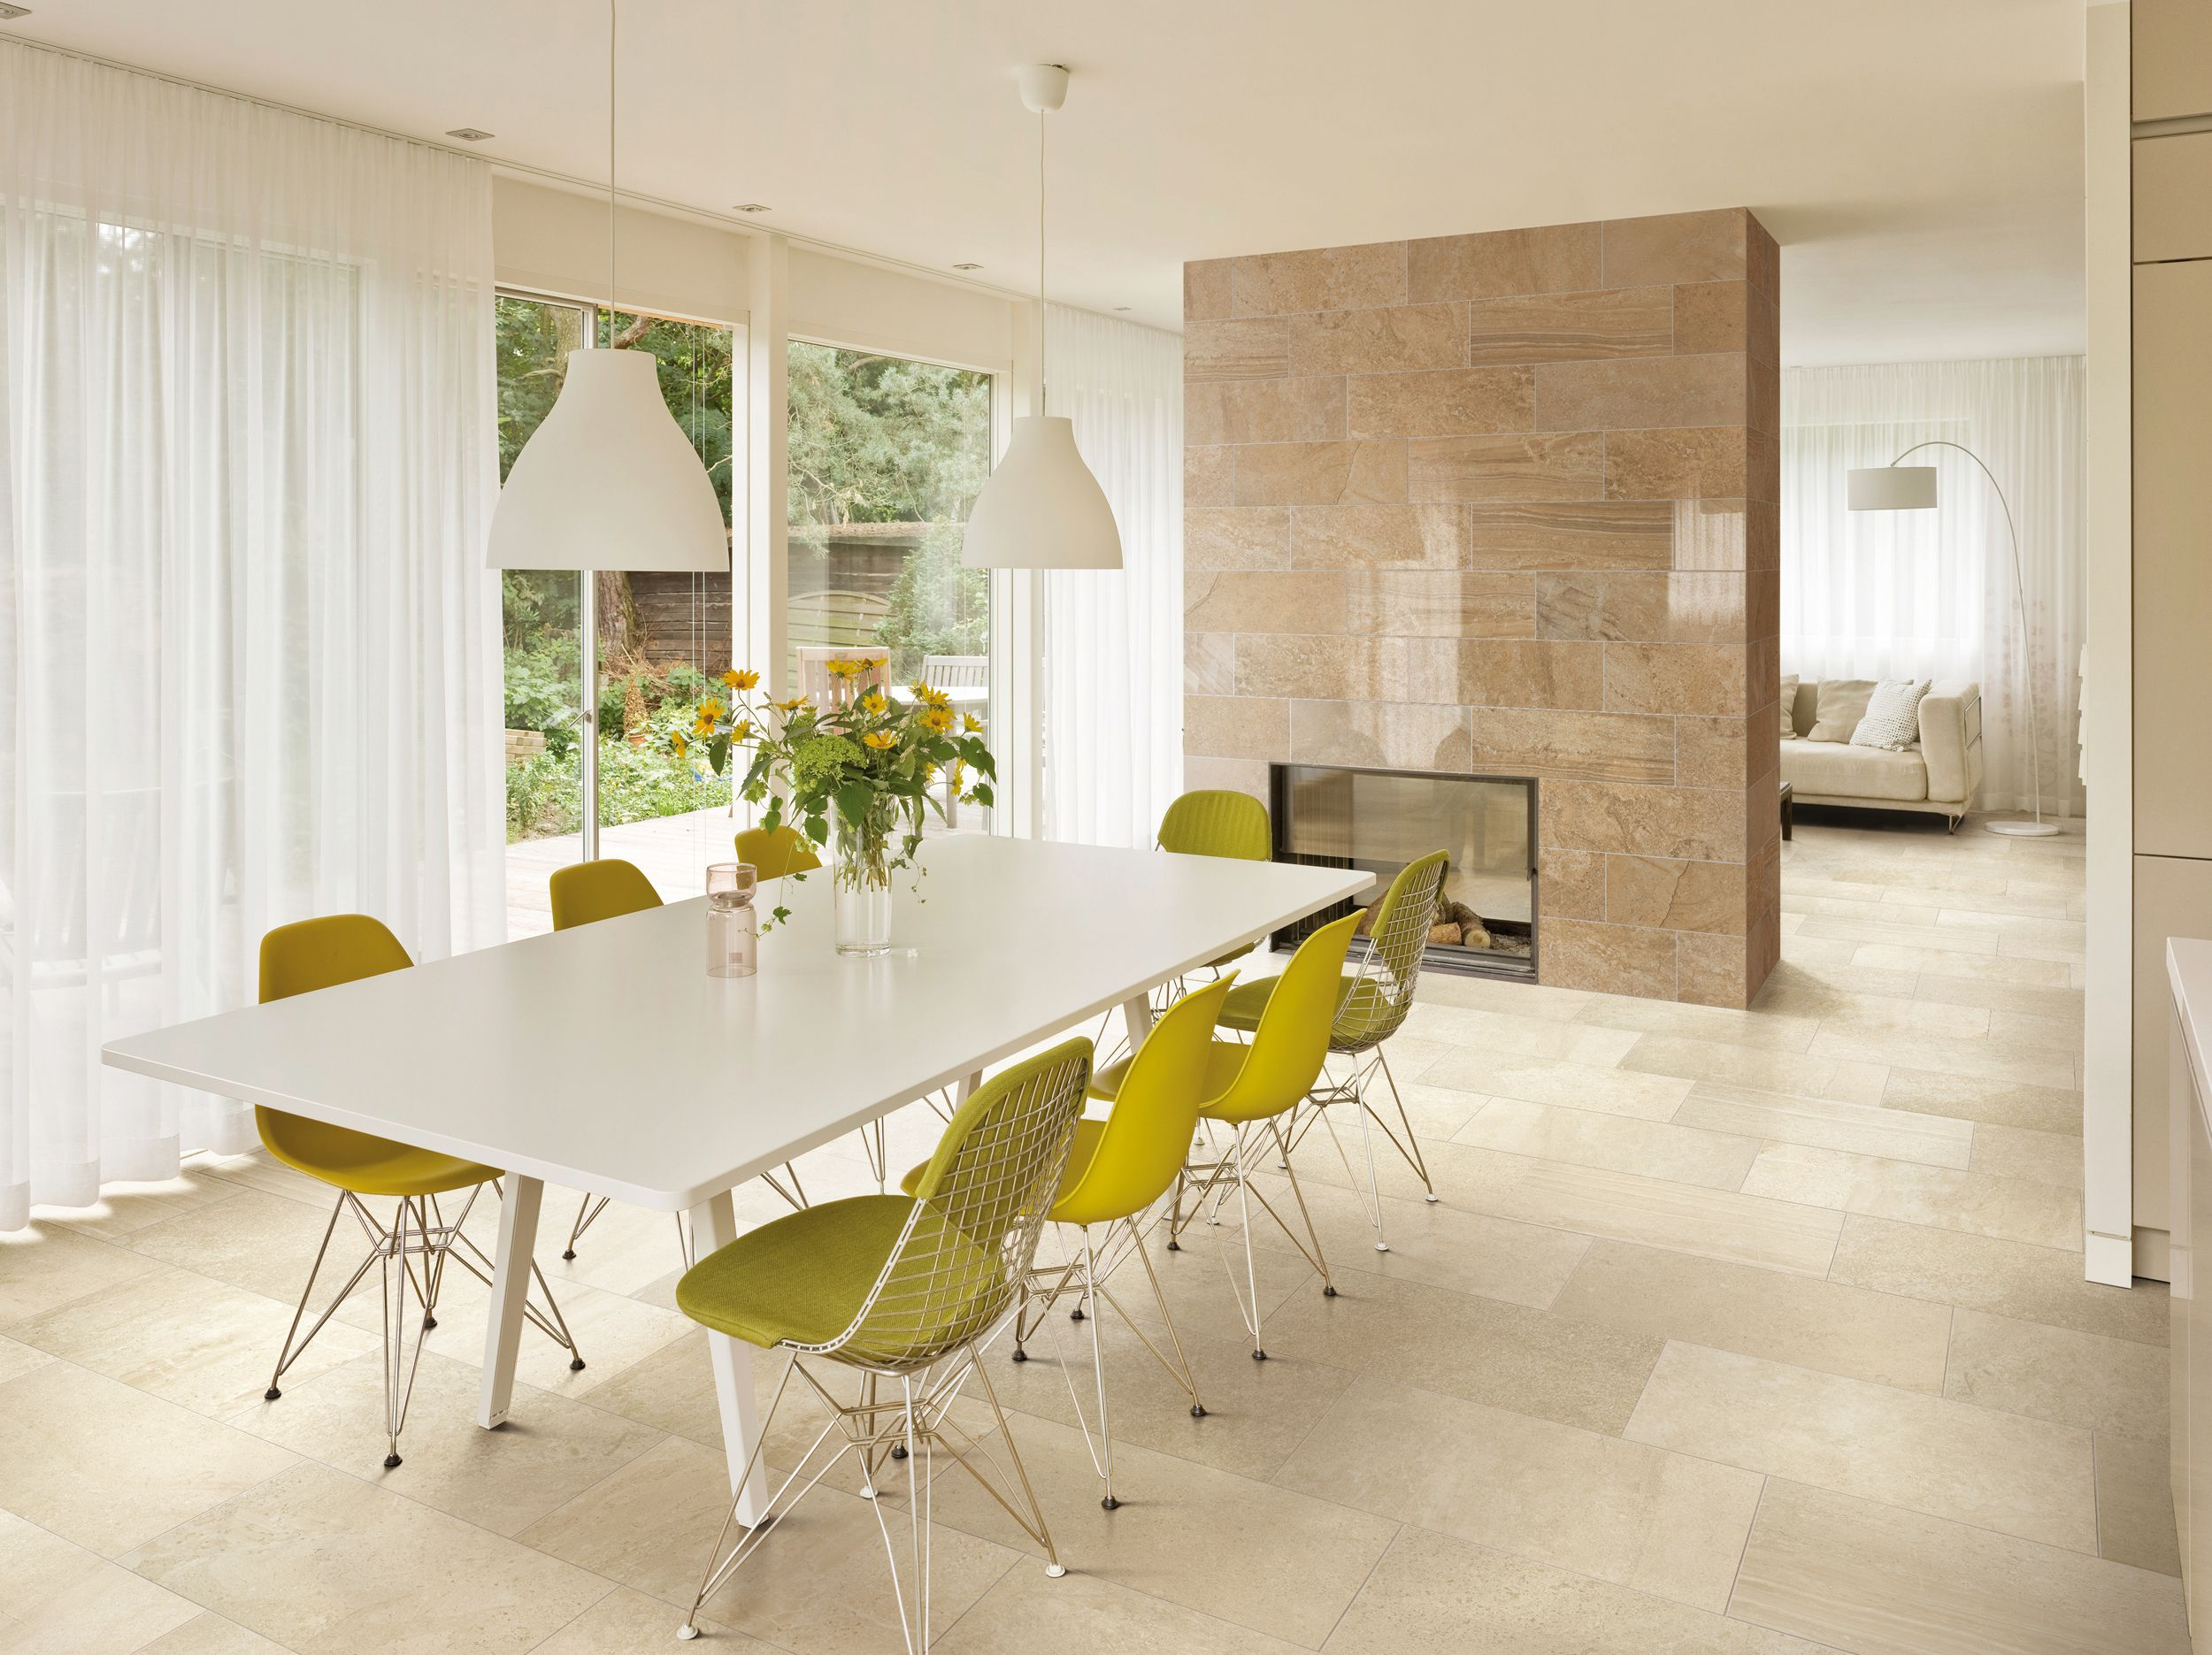 tile ultramodern ballpark style and sequoia wood floor wall porcelain selections floors lowes delightful look